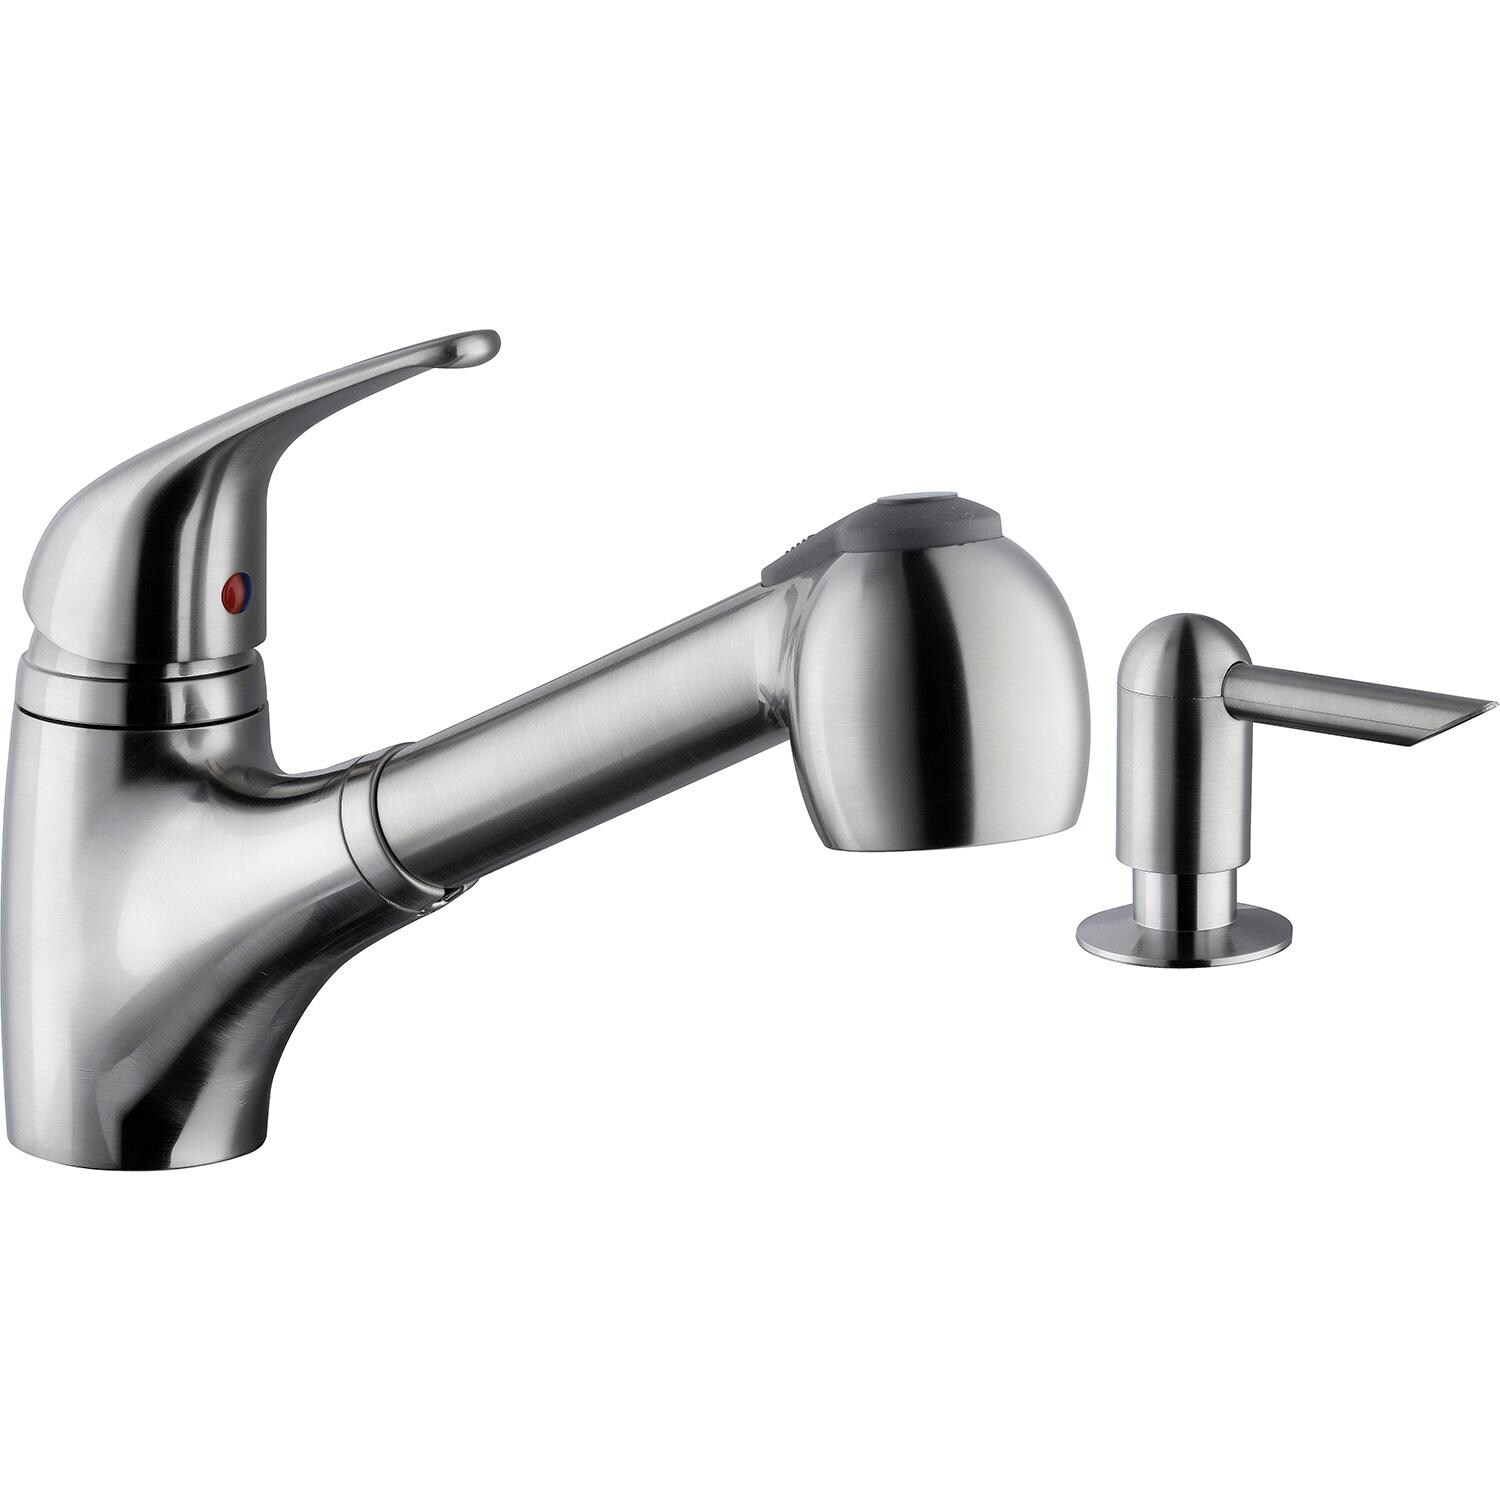 Kitchen Faucet With Built In Sprayer Platinum Sinks Single Top Handle Pull Out Hot Cold Faucet